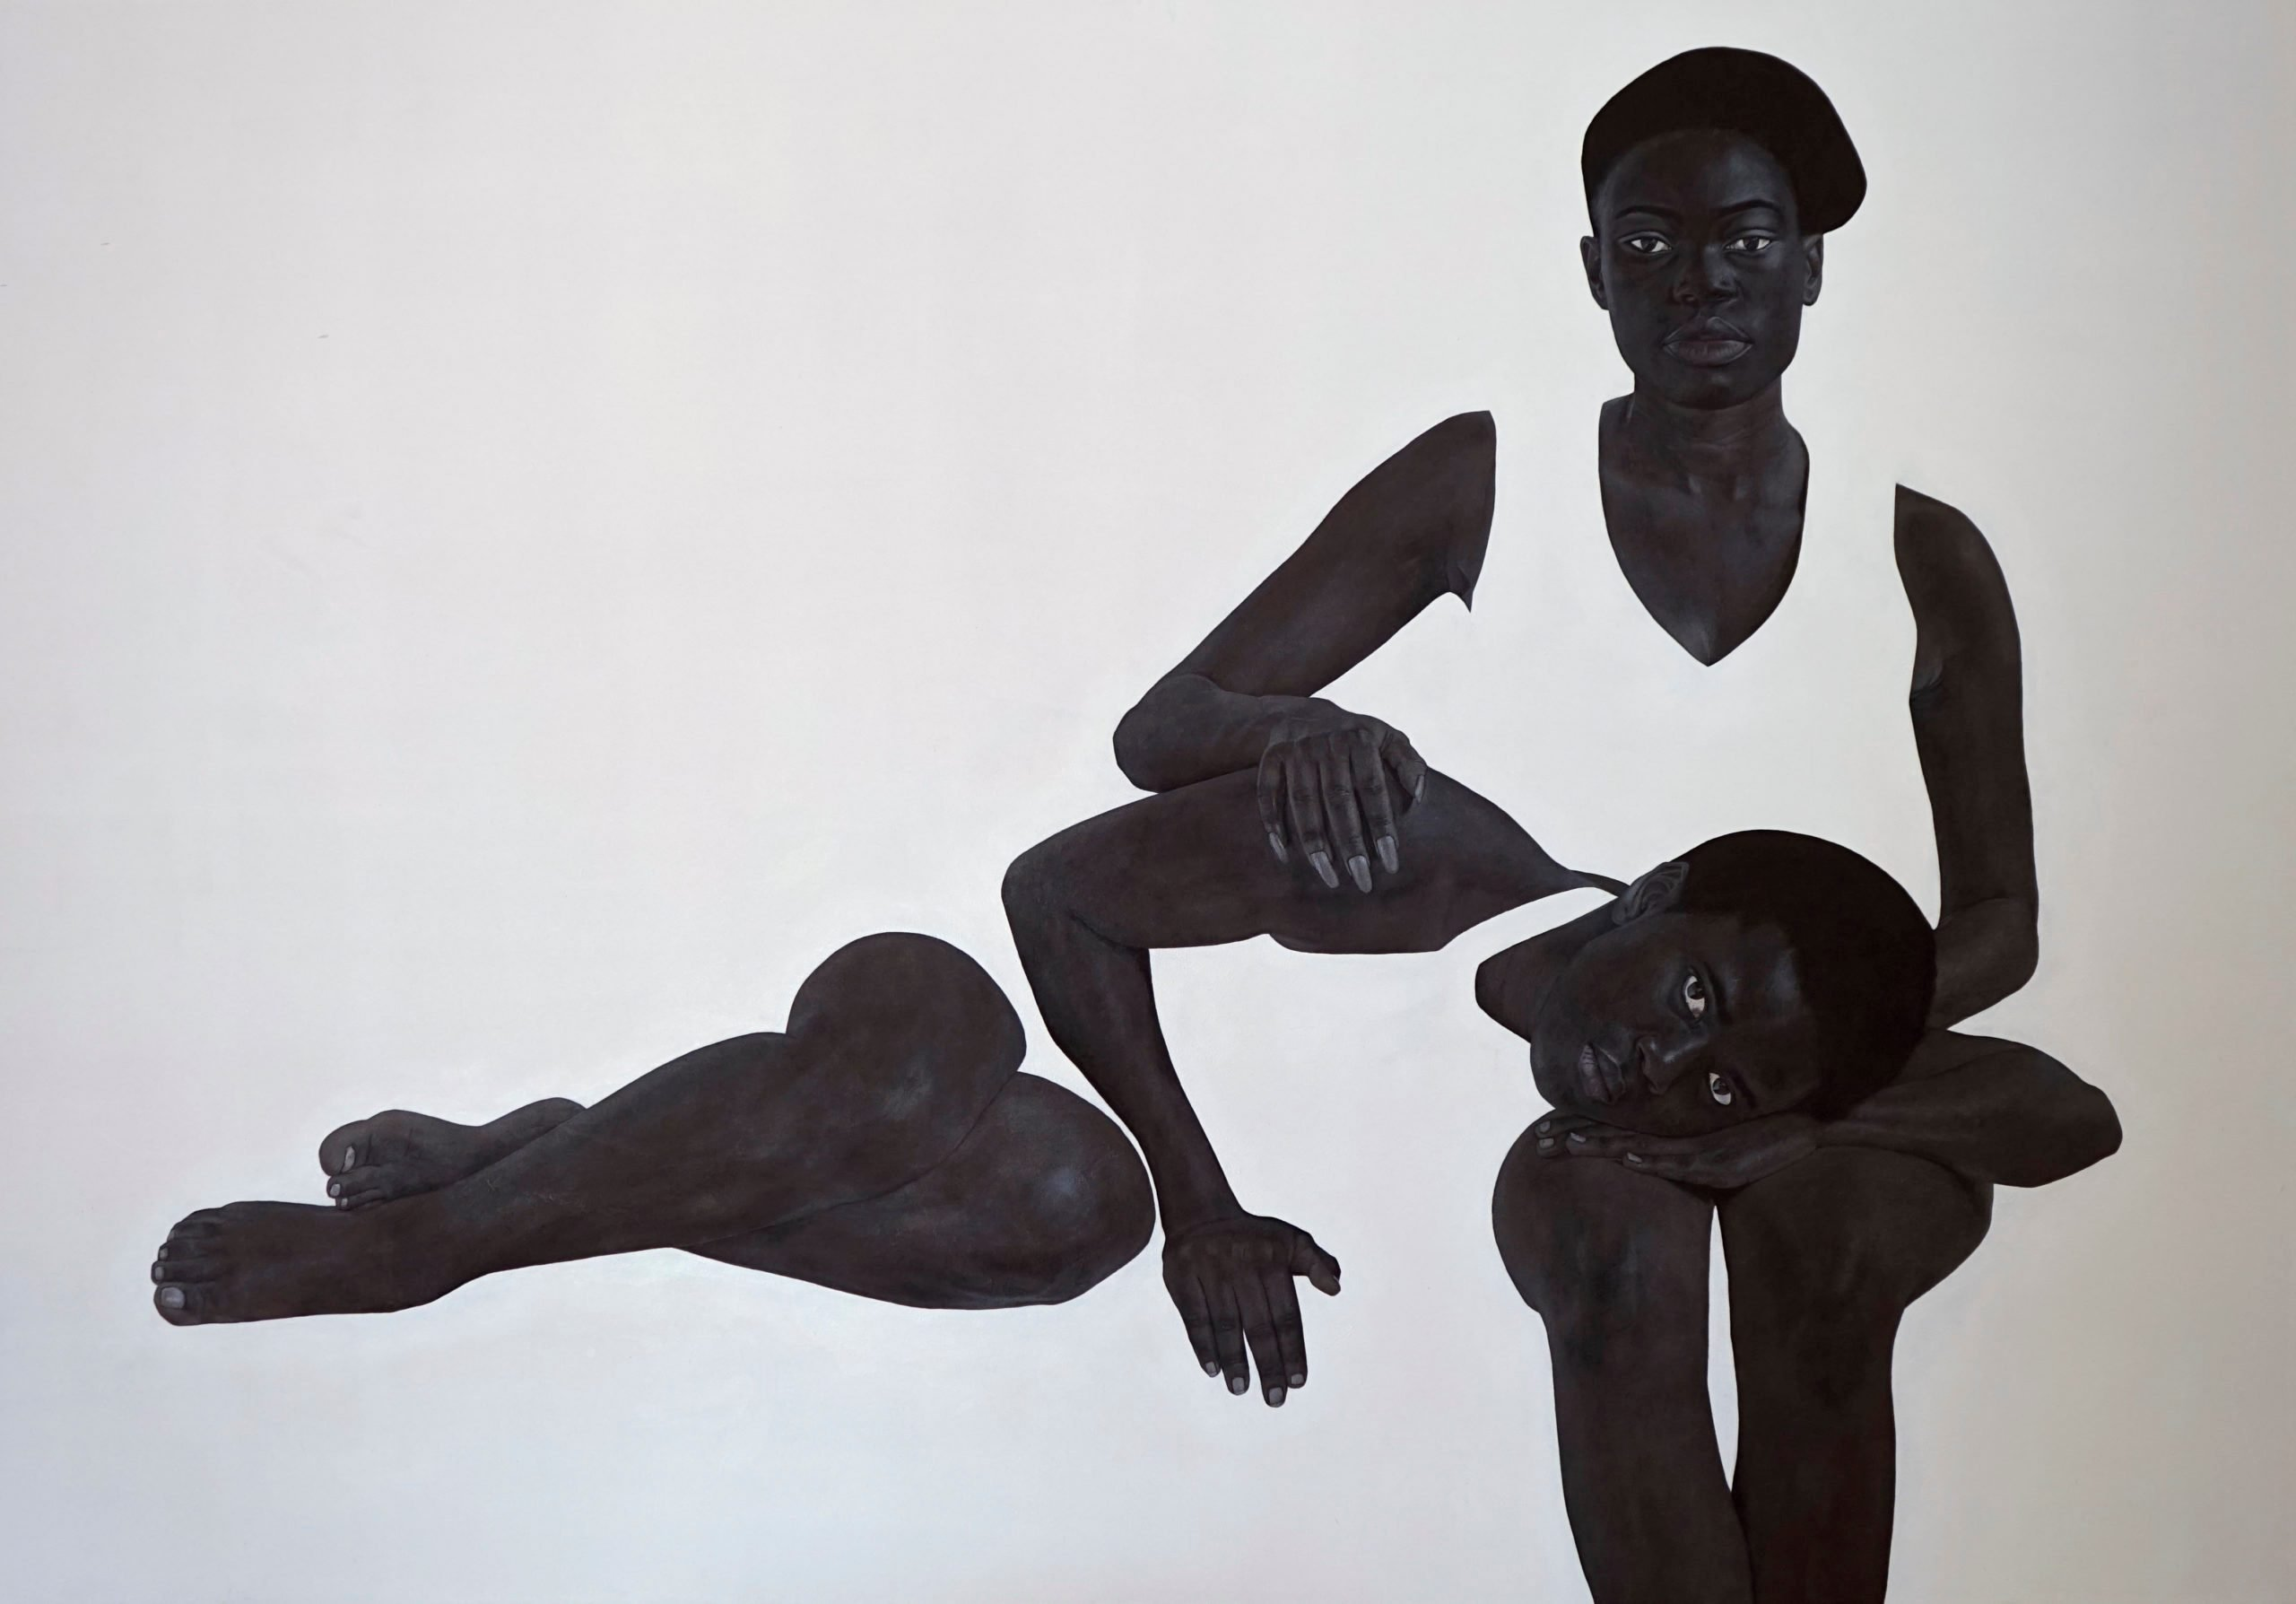 Sungi Mlengeya, Unclench, 2020, Acrylic on canvas, 140x200cm